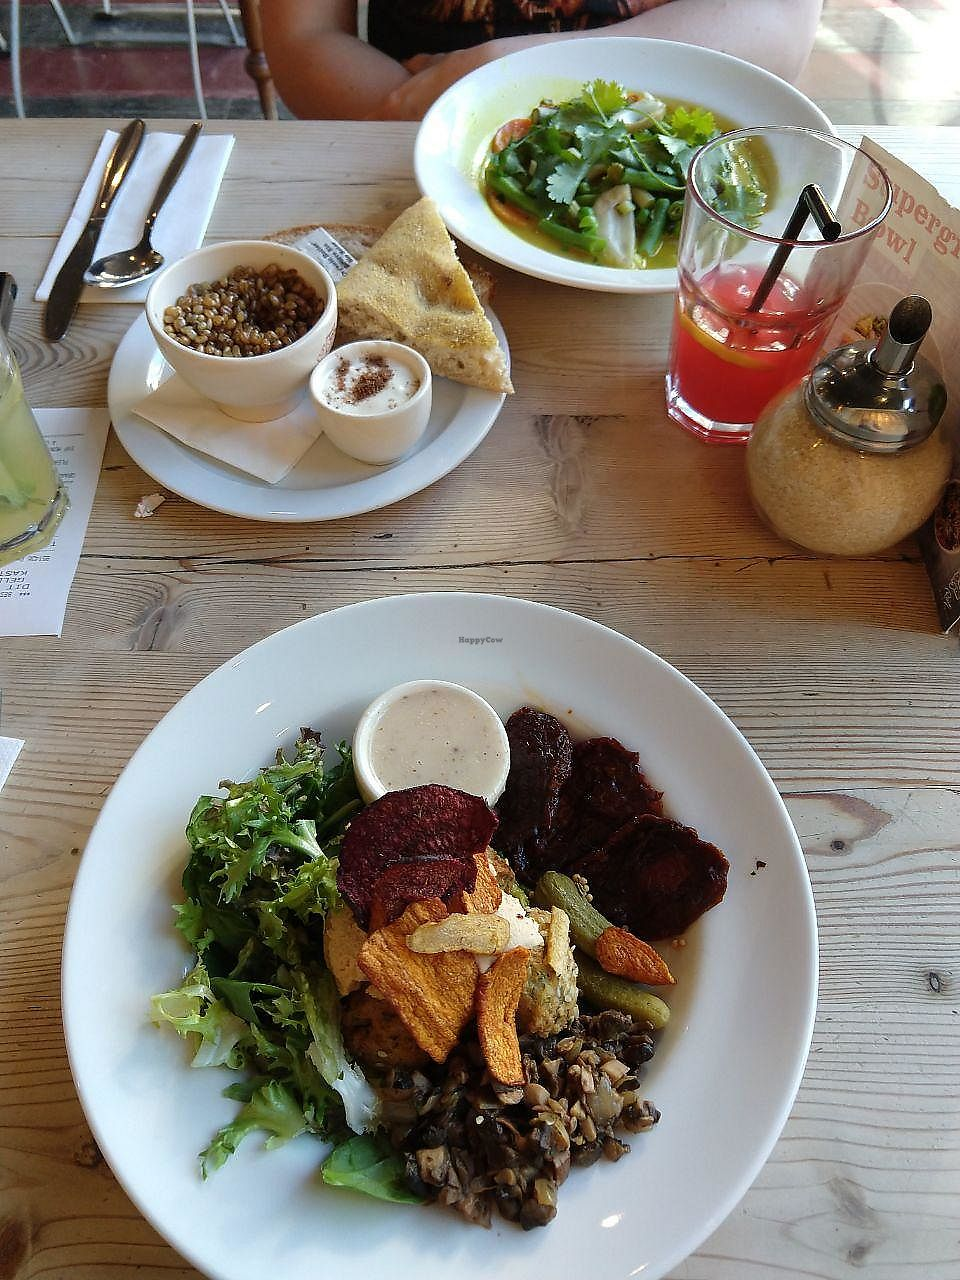 """Photo of Le Pain Quotidien  by <a href=""""/members/profile/KennyVdm"""">KennyVdm</a> <br/>Curry with vegetables (top) and Falafel Bowl (bottom) <br/> May 6, 2018  - <a href='/contact/abuse/image/86339/396203'>Report</a>"""